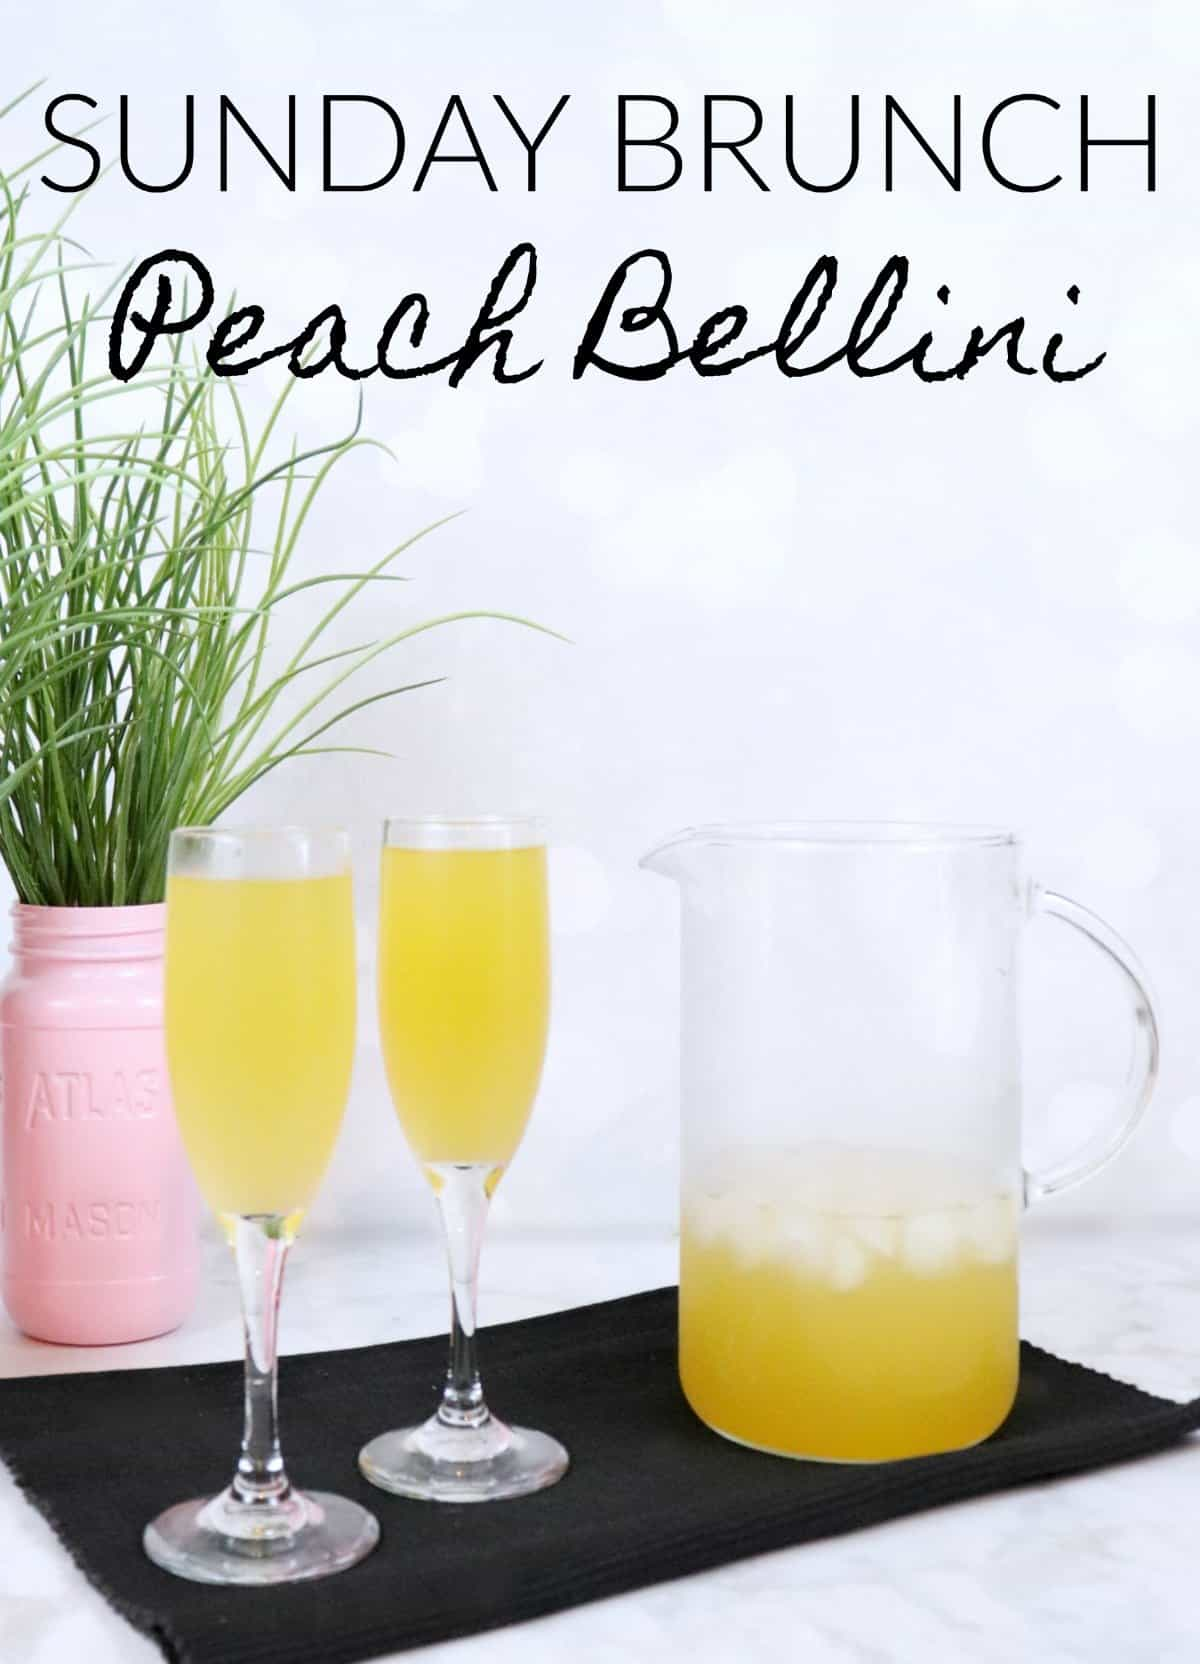 sunday brunch peach bellini recipe for a pitcher to please a crowd